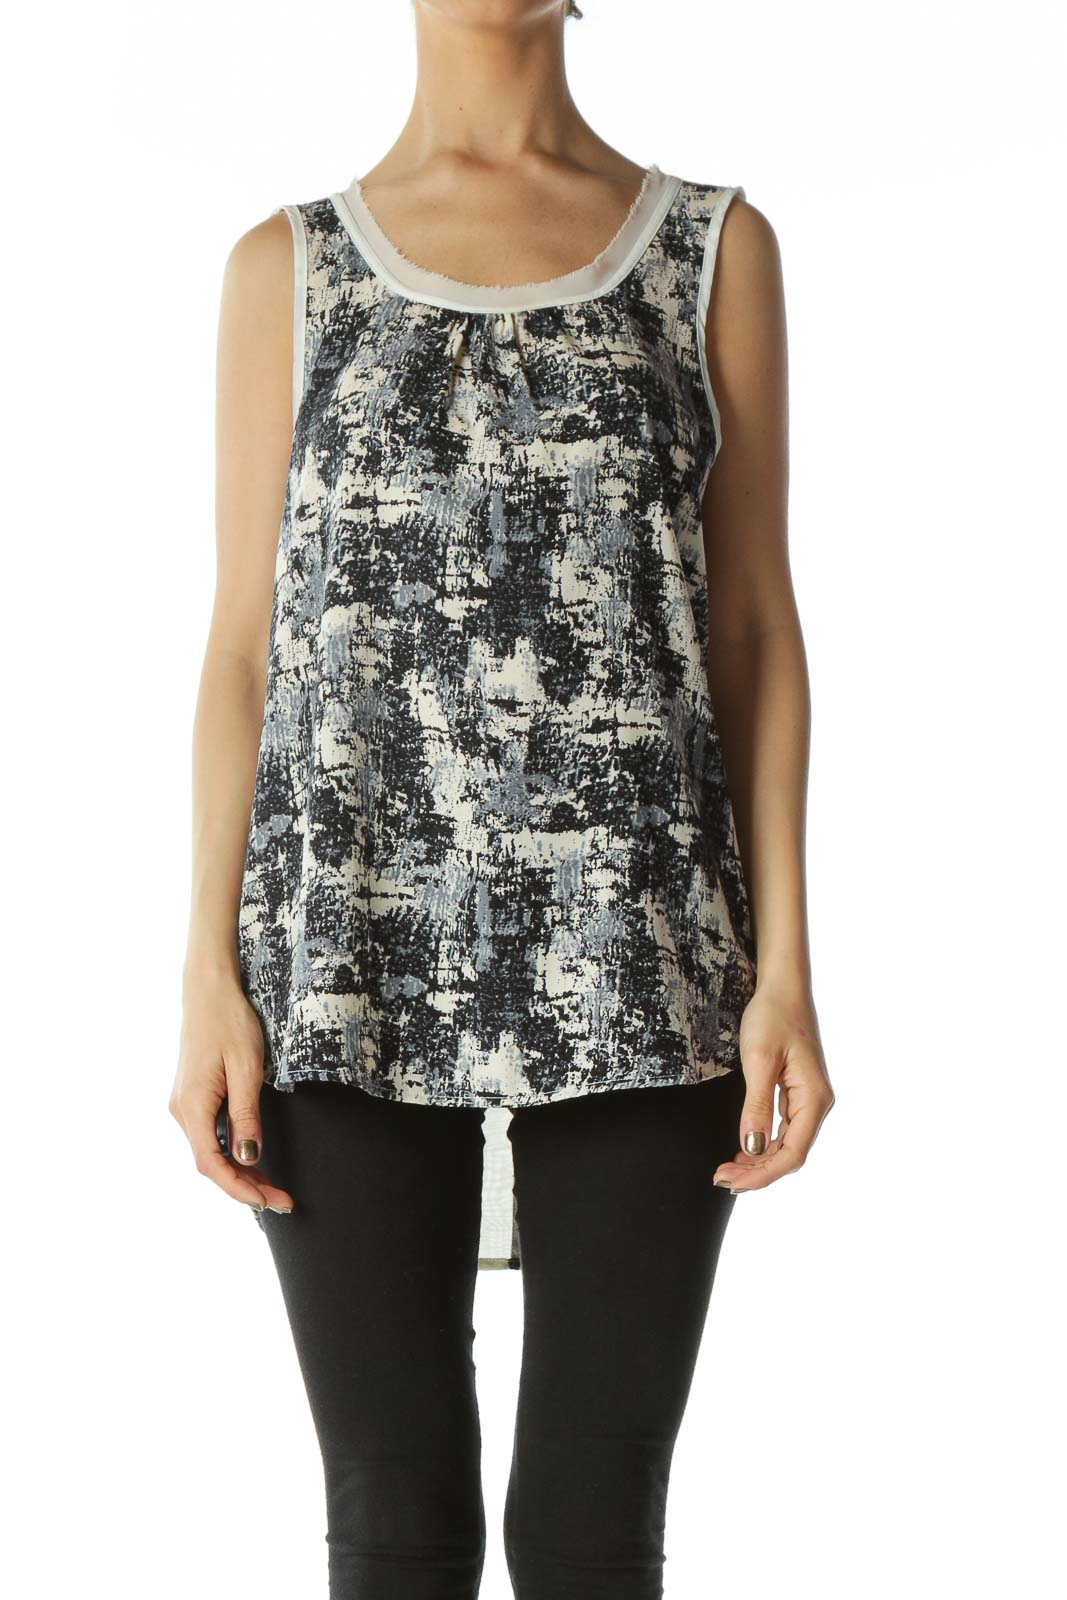 Navy White and Grey Abstract Graphic Sleeveless Blouse with Raw Hem Neckline Front